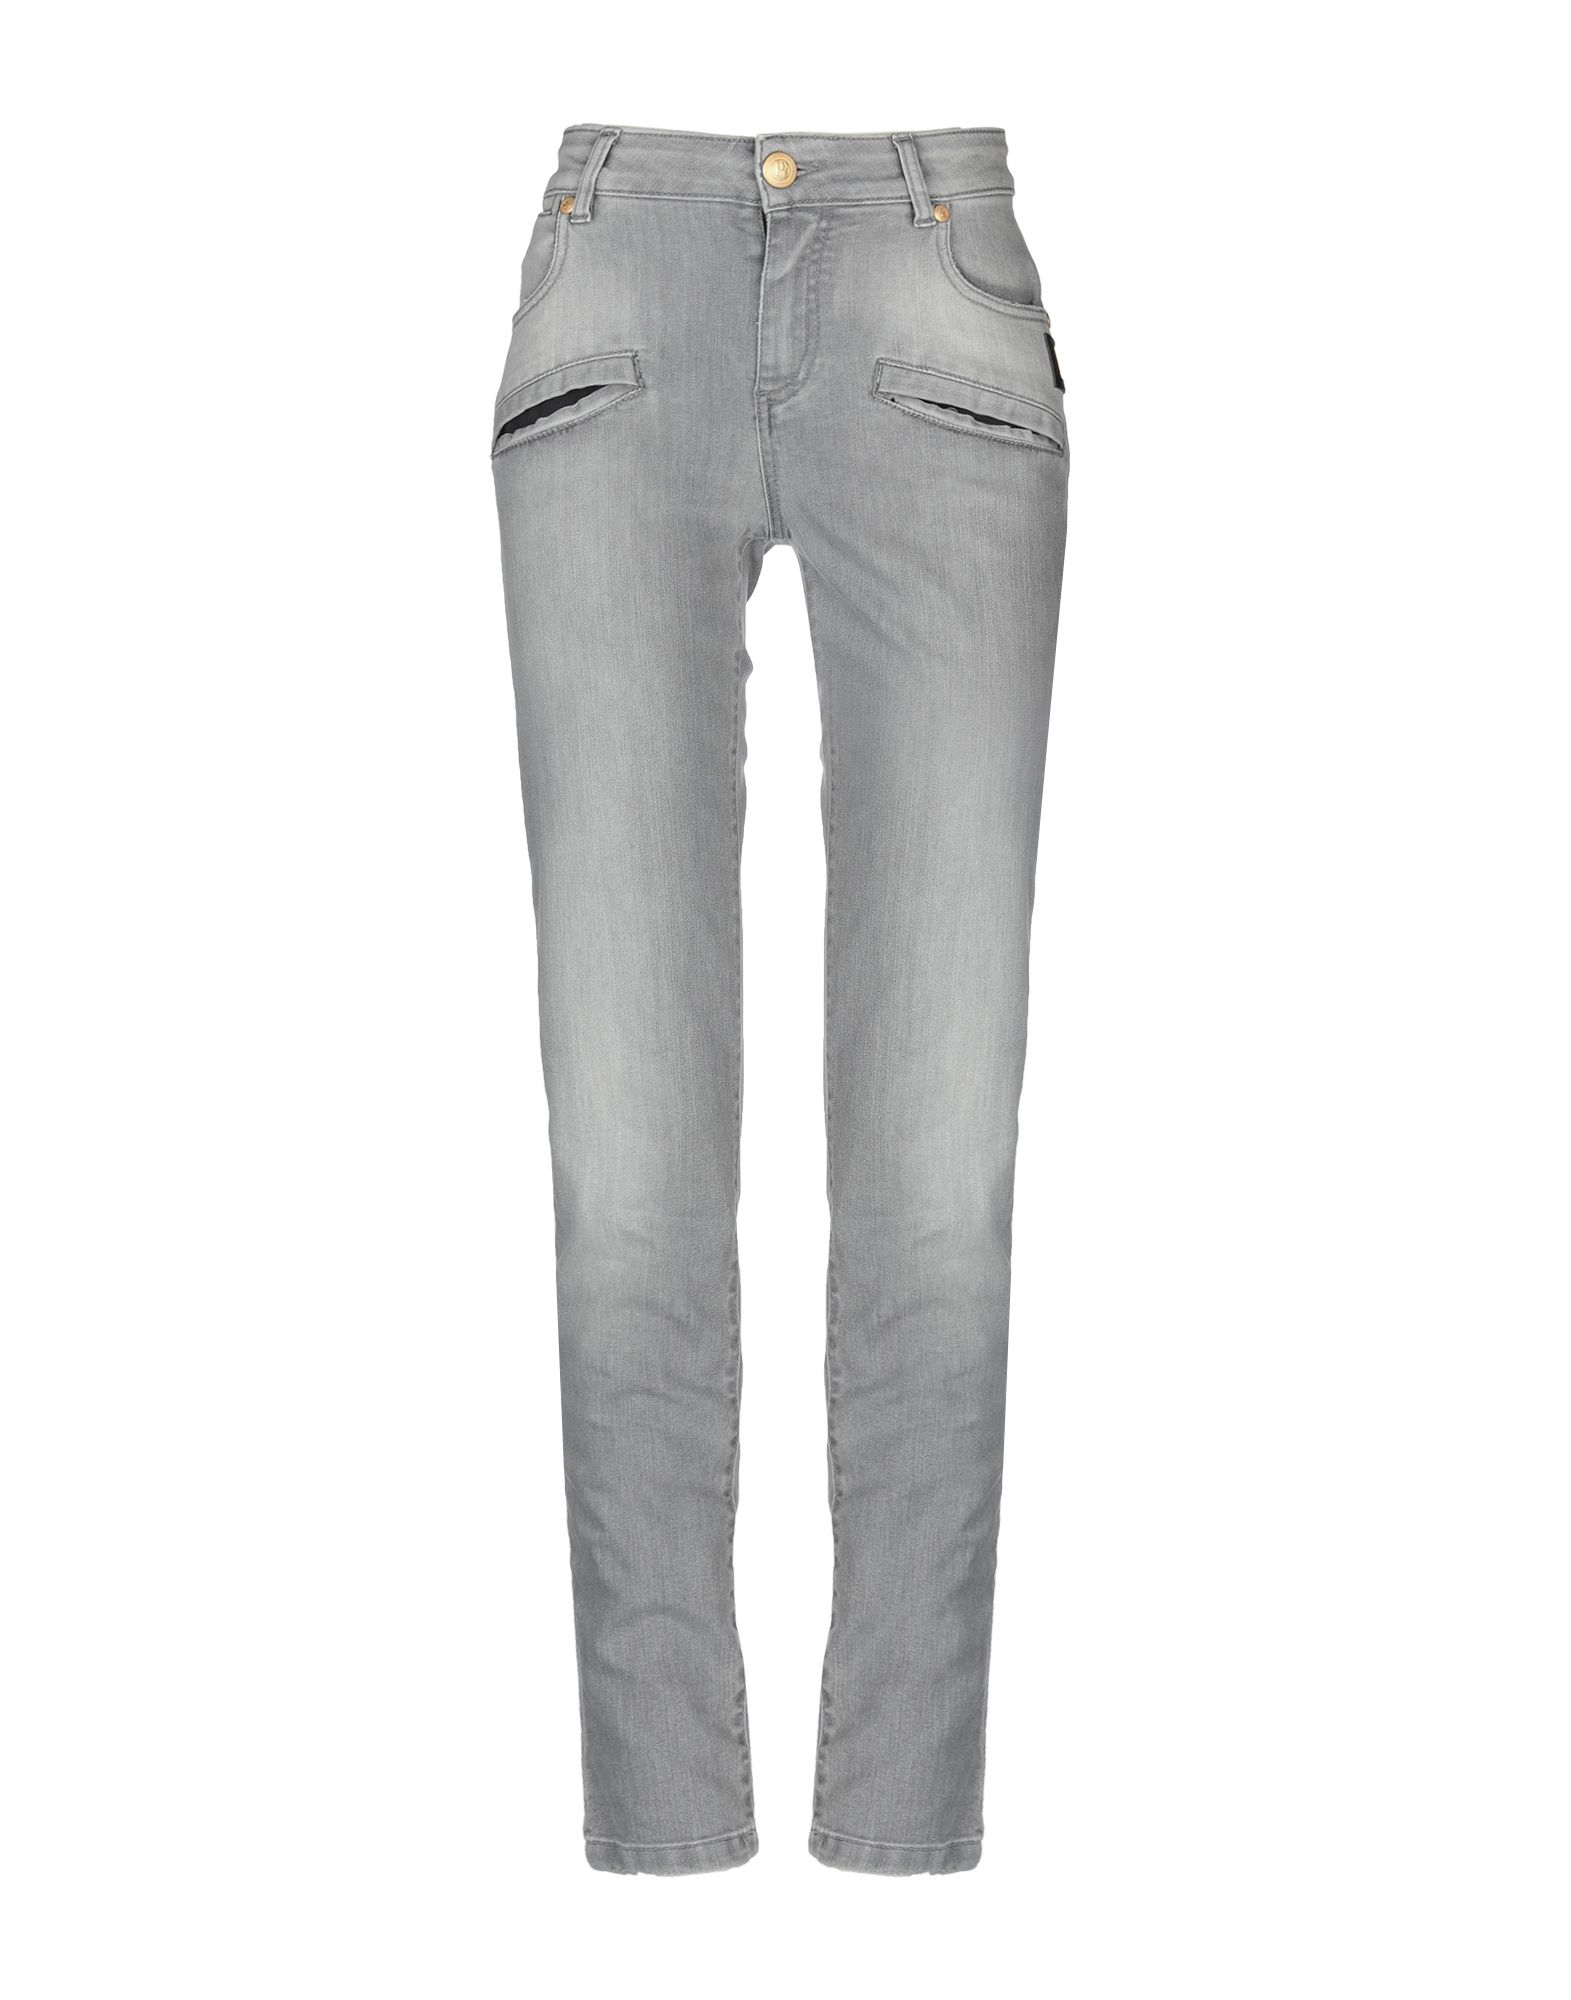 31ddd54cd65 Pierre Balmain Denim Pants - Women Pierre Balmain Denim Pants online ...